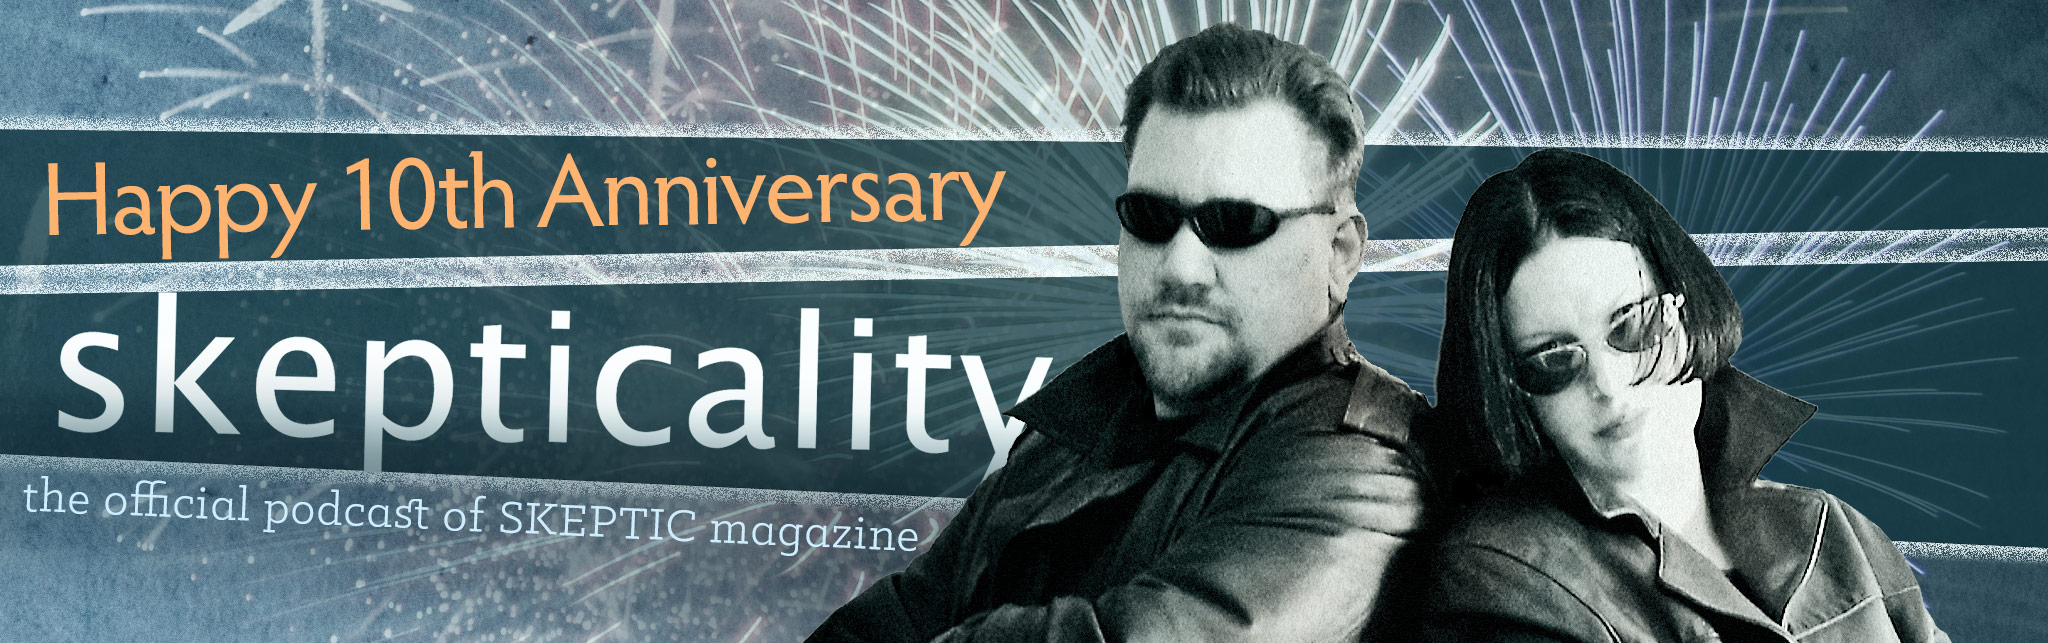 Skepticality logo (Happy 10th Anniversary!)